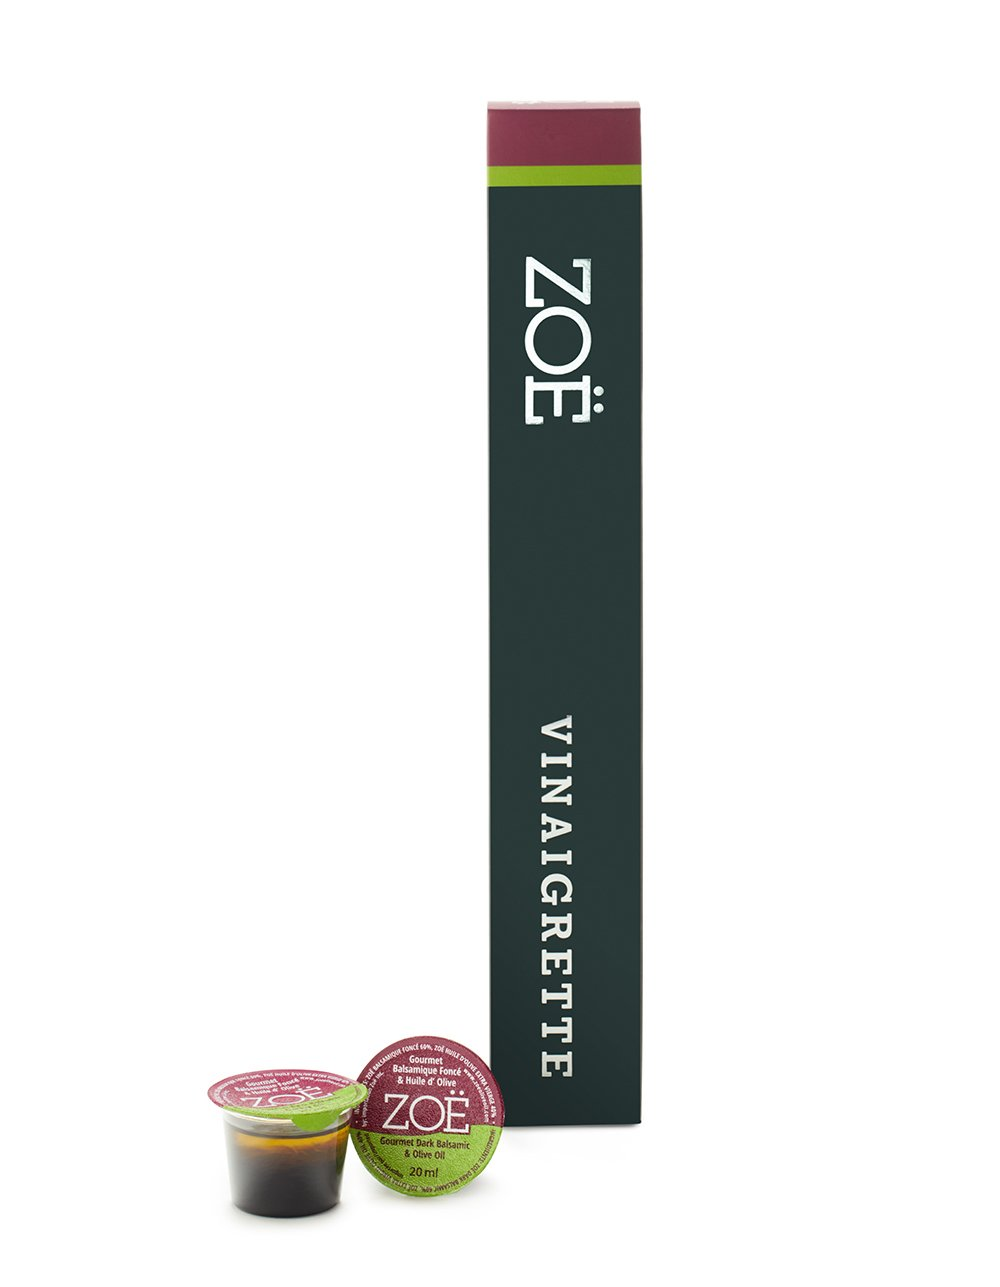 ZOË DARK BALSAMIC & OLIVE OIL PODS